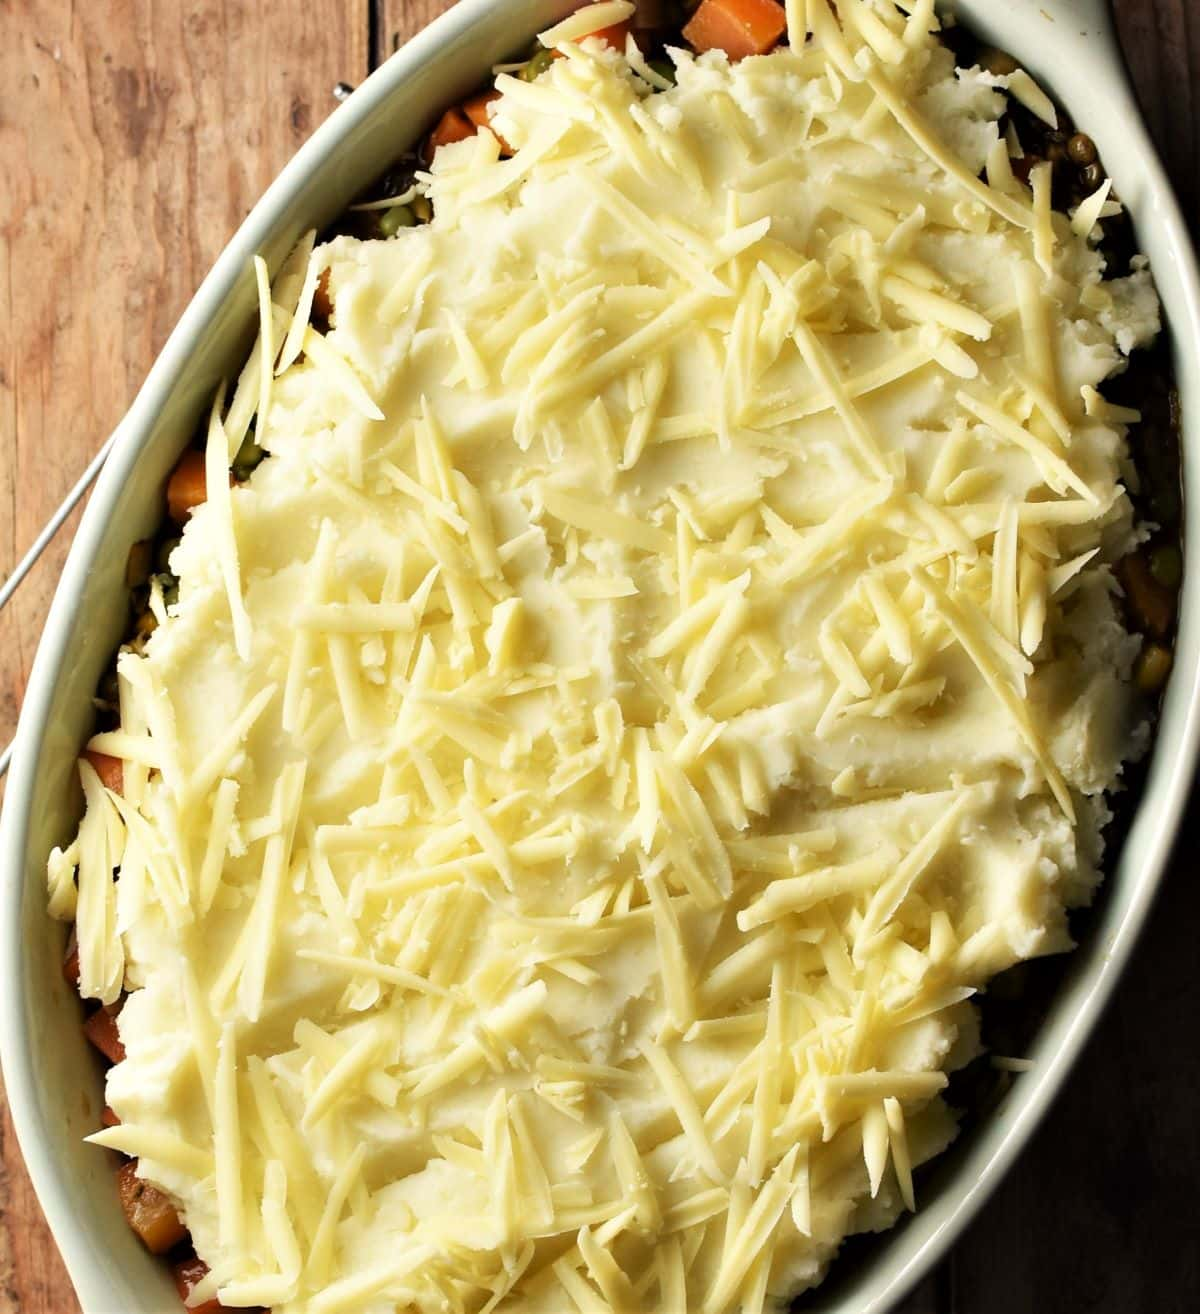 Shepherd's pie with potato topping and scatter of grated cheese.